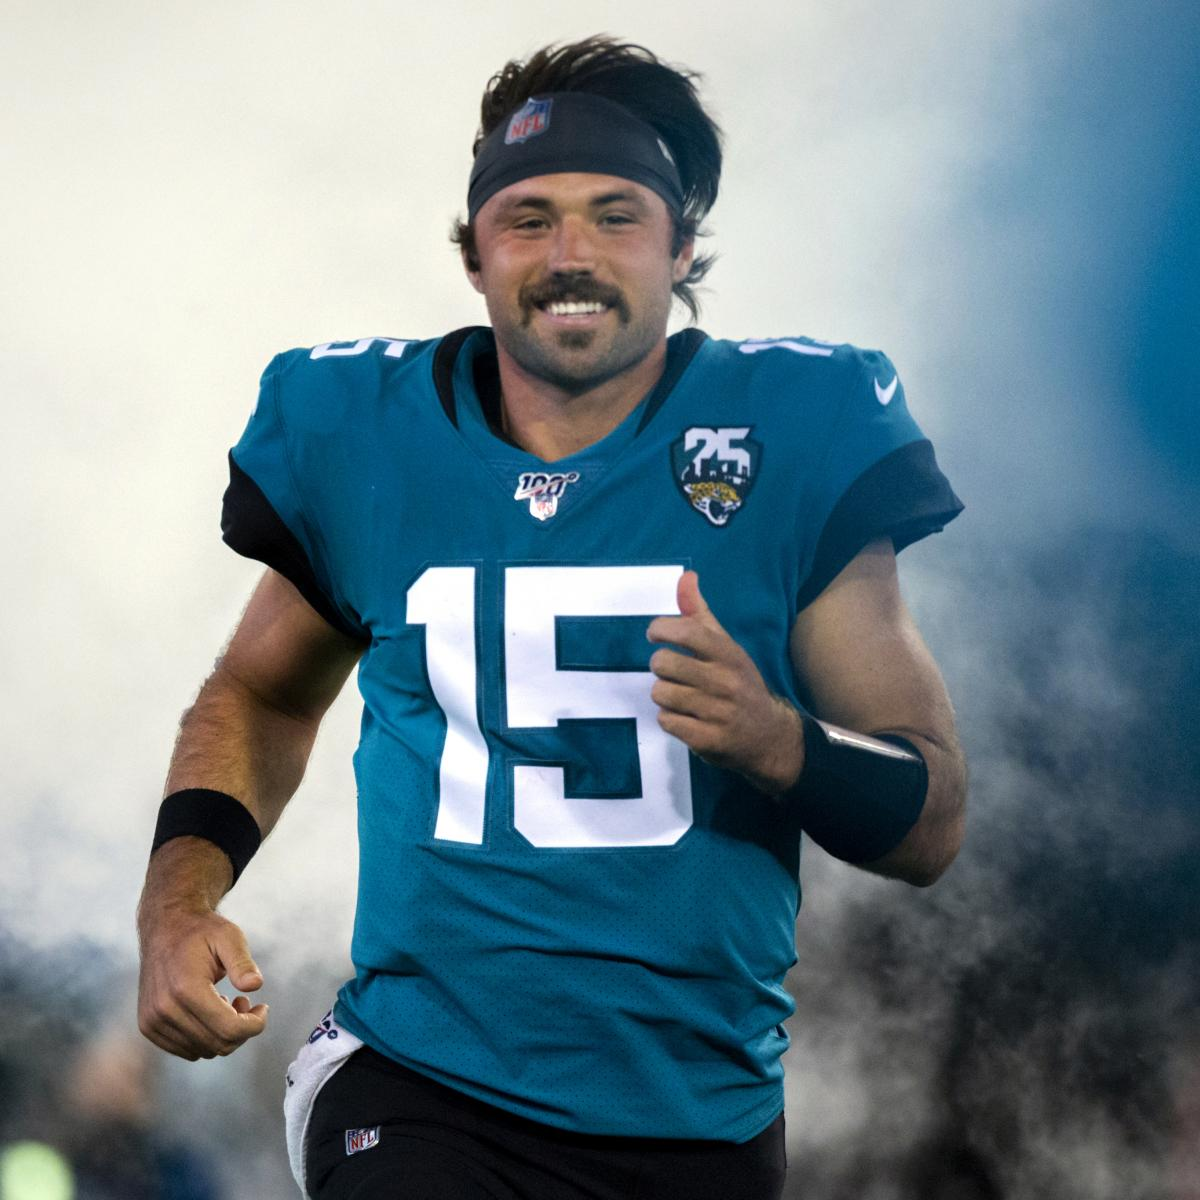 Jaguars Sell Special Ticket Package Amid Gardner Minshew's New-Found Fame